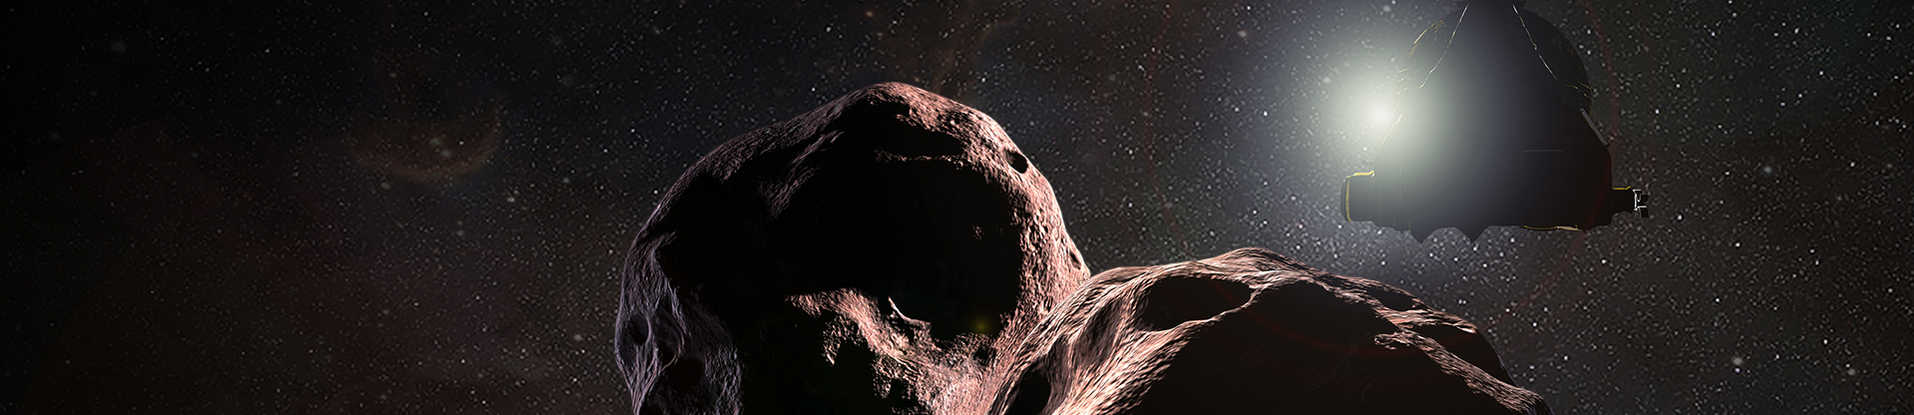 Press Release-New Horizons offers first view of Ultima Thule